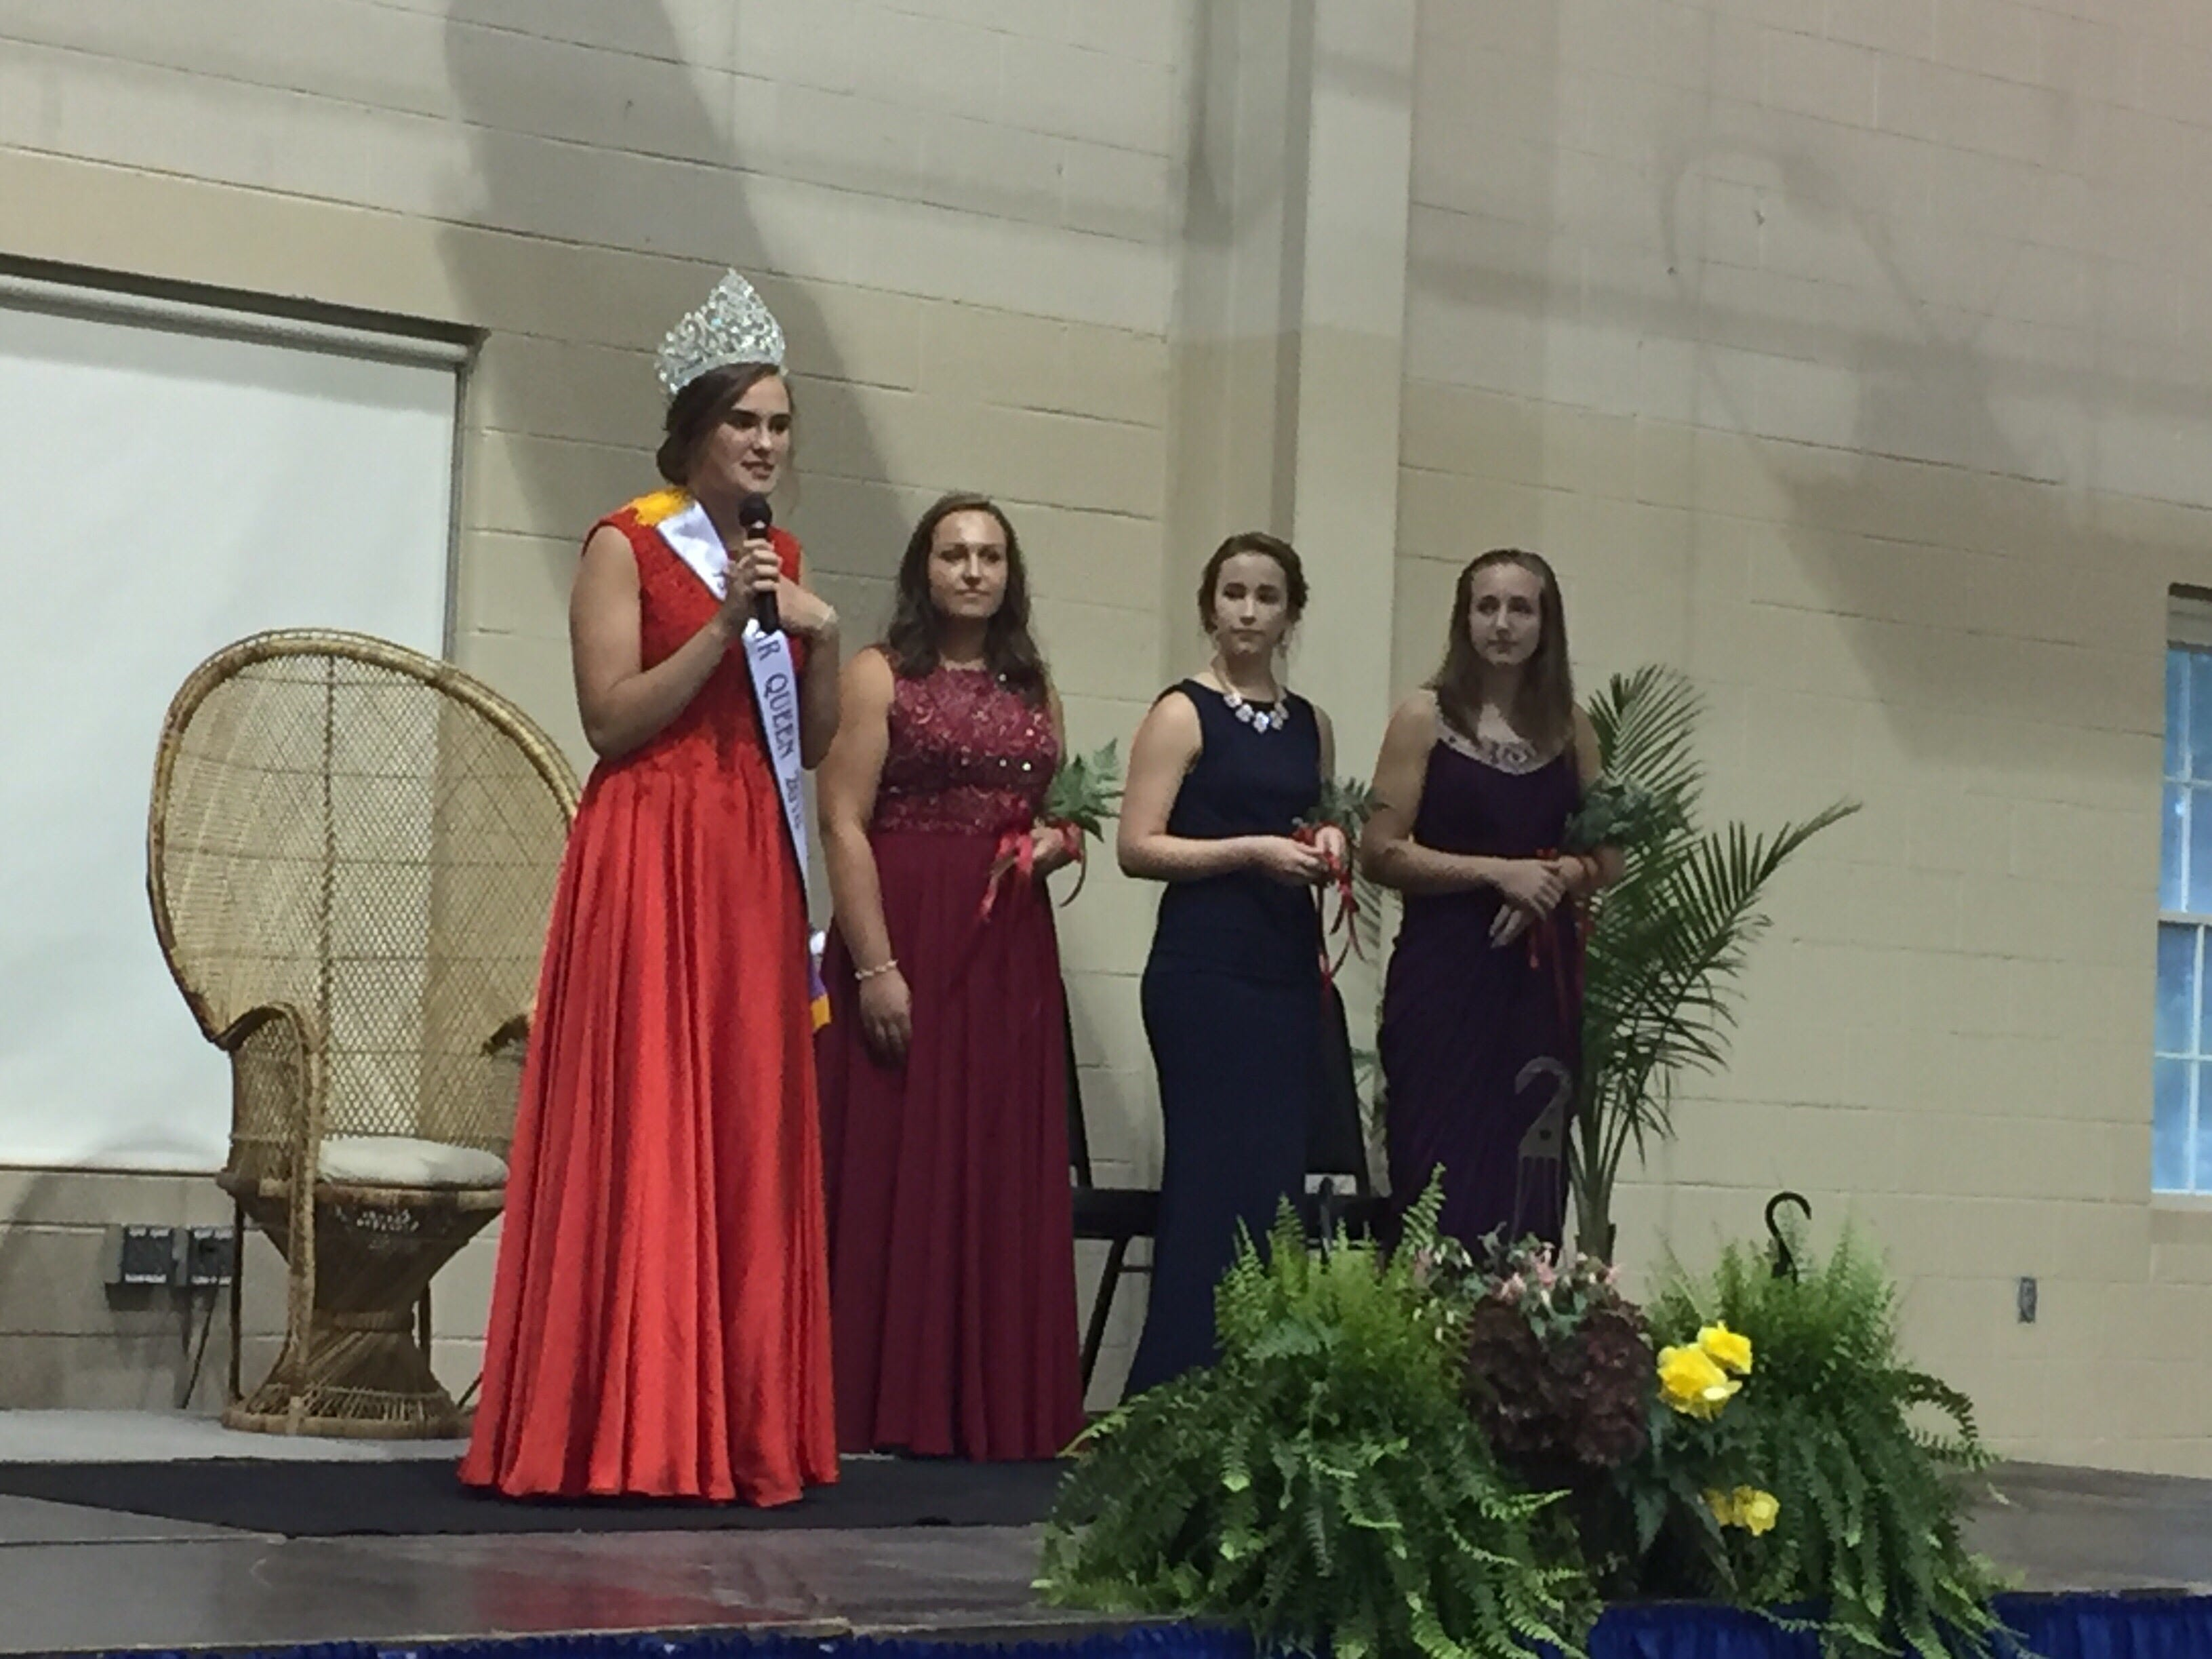 Moments before the dramatic conclusion to the 2018 Lebanon Fair Queen coronation.